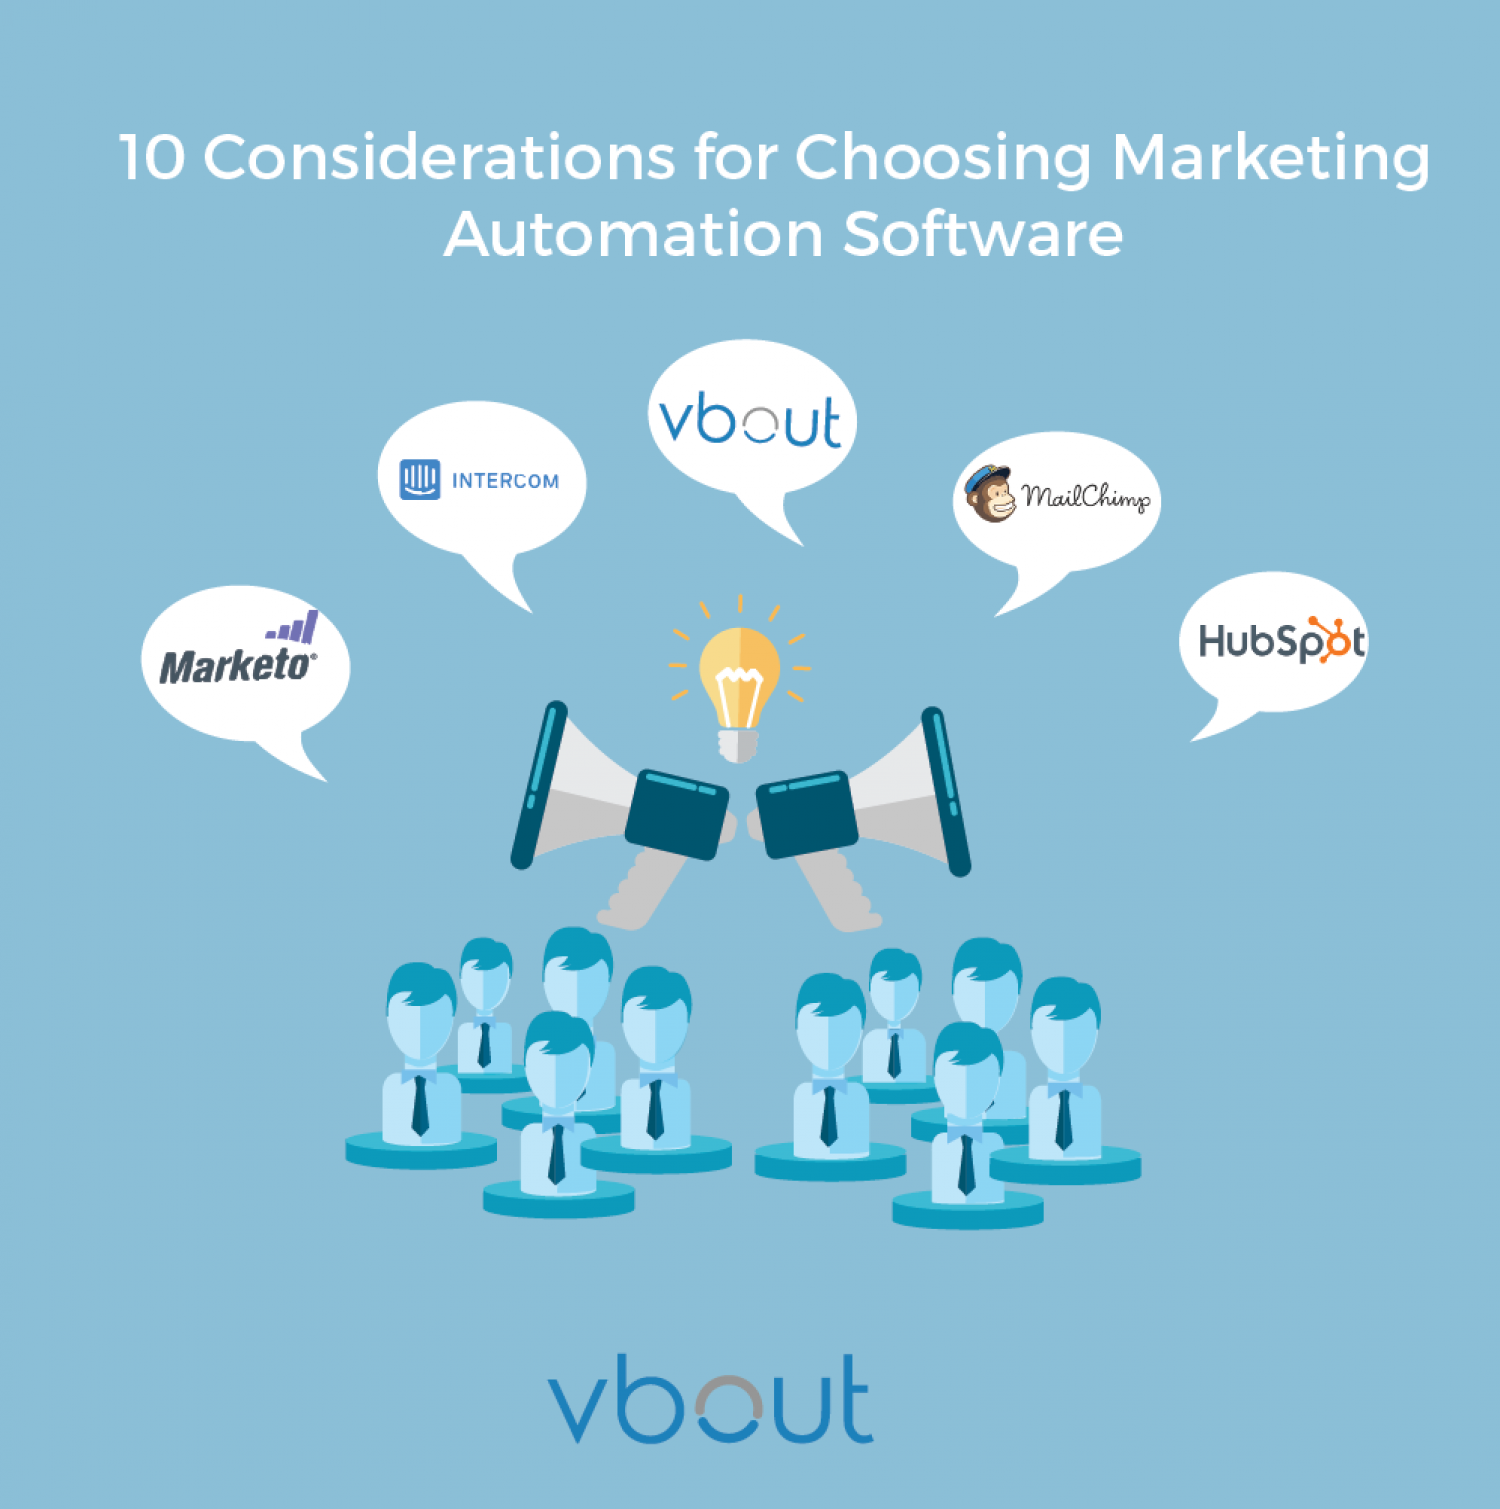 10 Considerations for Choosing Marketing Automation Software Infographic